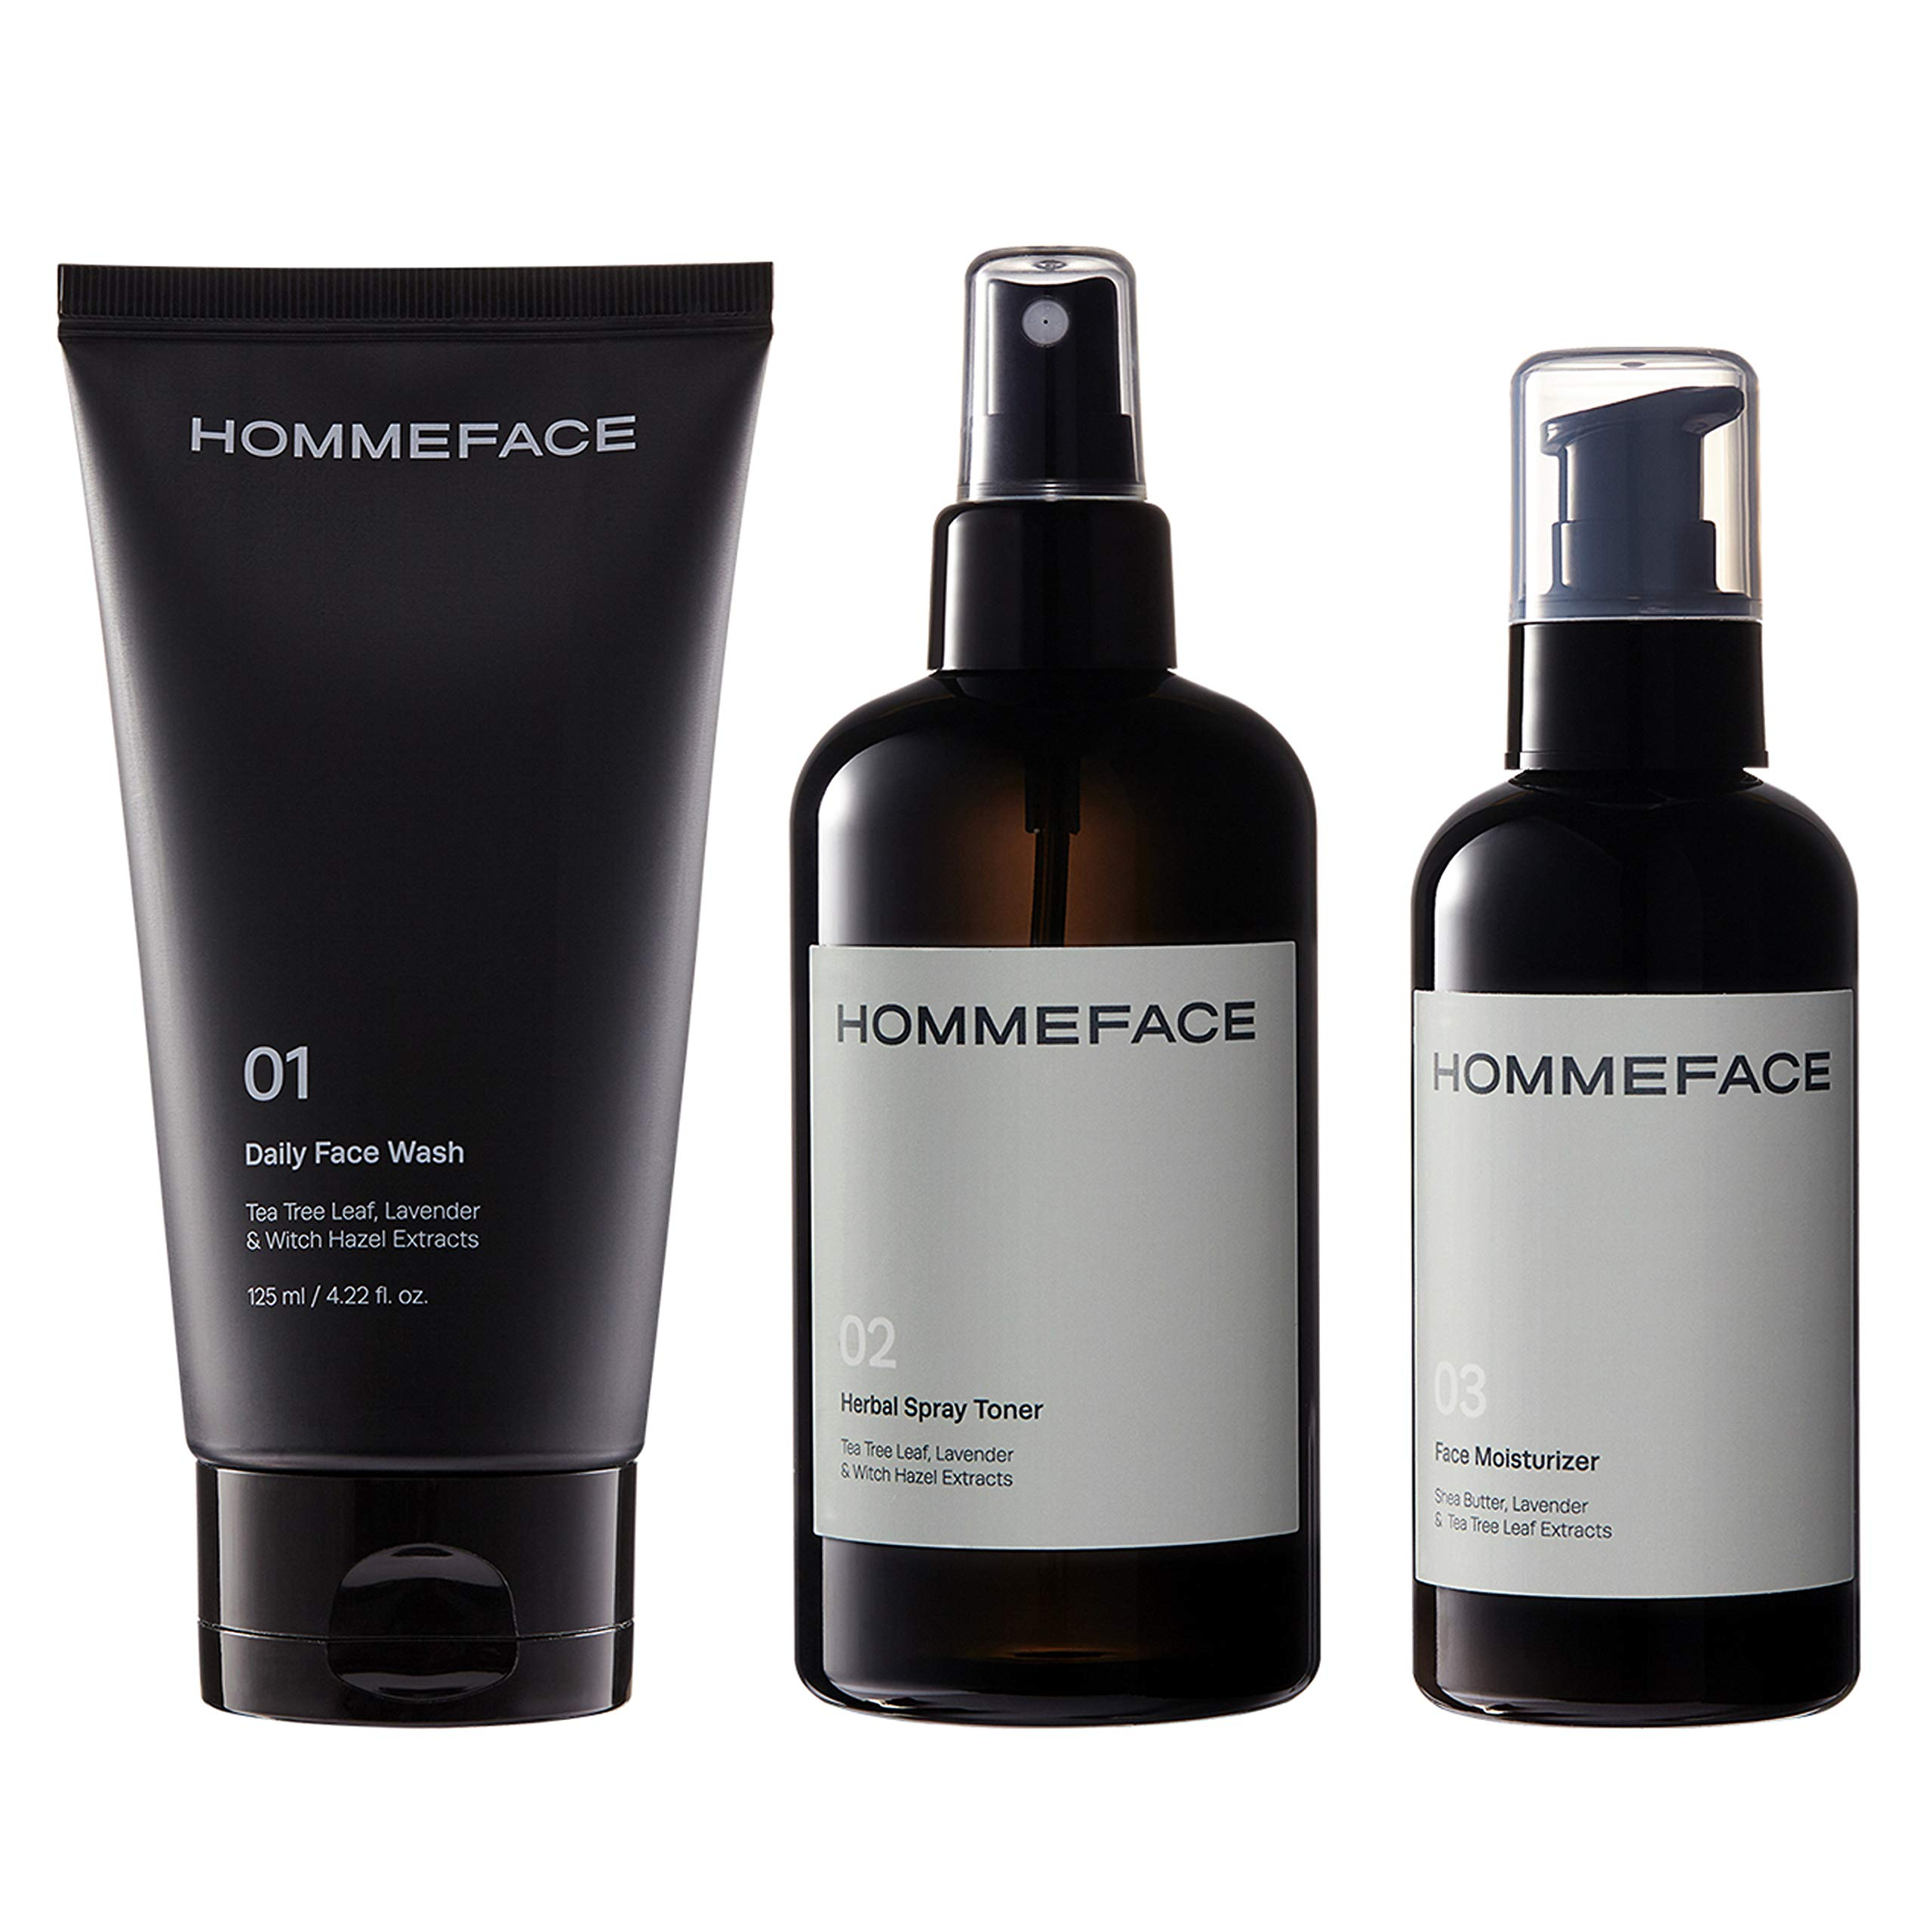 HOMMEFACE Daily Trio Skin Care Set for Men, 3-Step Routine by HommeFace